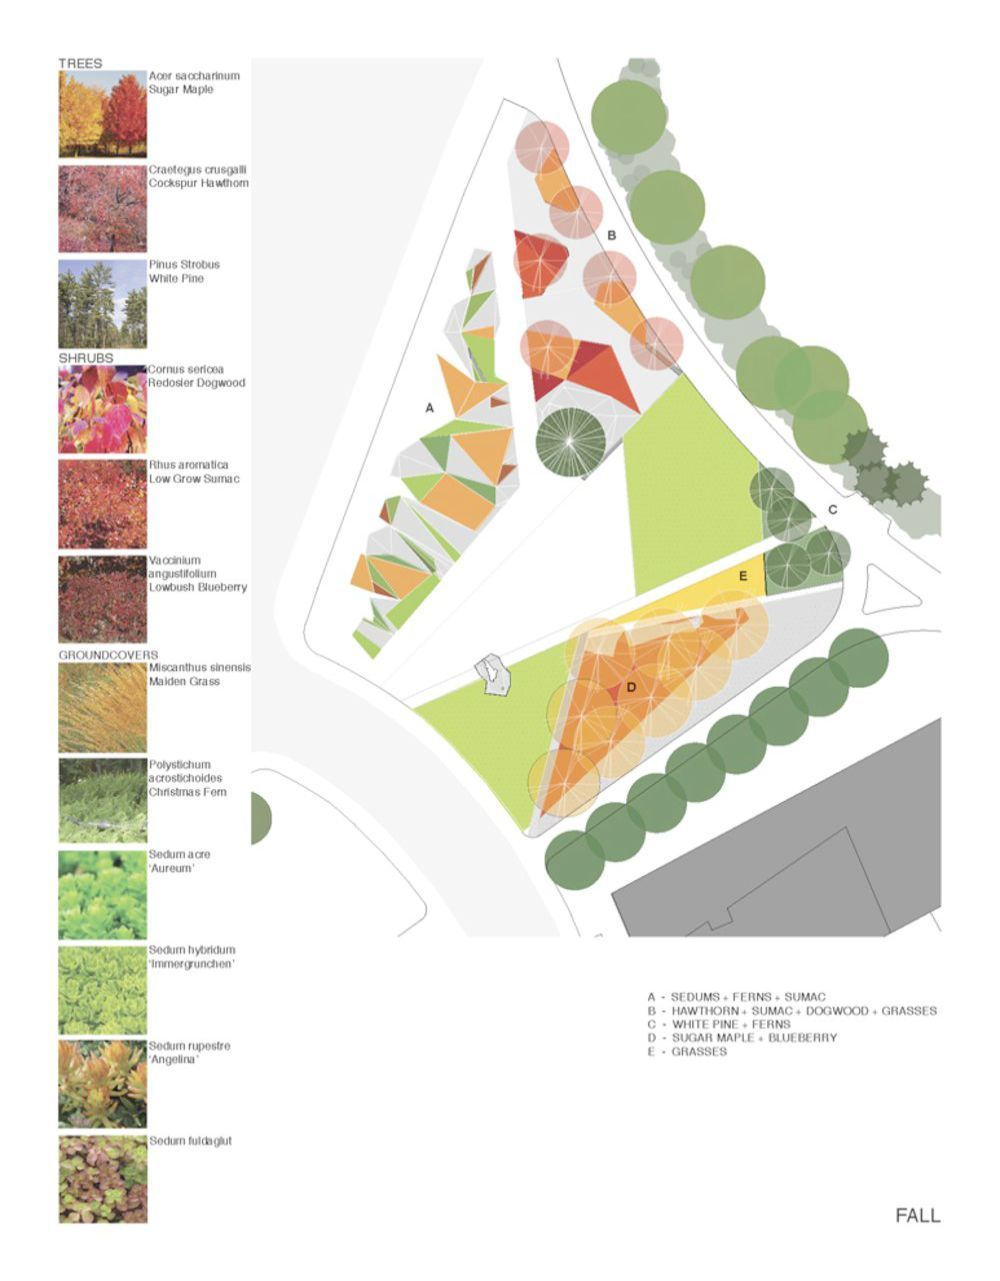 Low Maintenance Landscaping Ideas For Small Front Yard Onto Landscape Design Ideas Landscape Design Landscape Architecture Diagram Landscape Architecture Plan